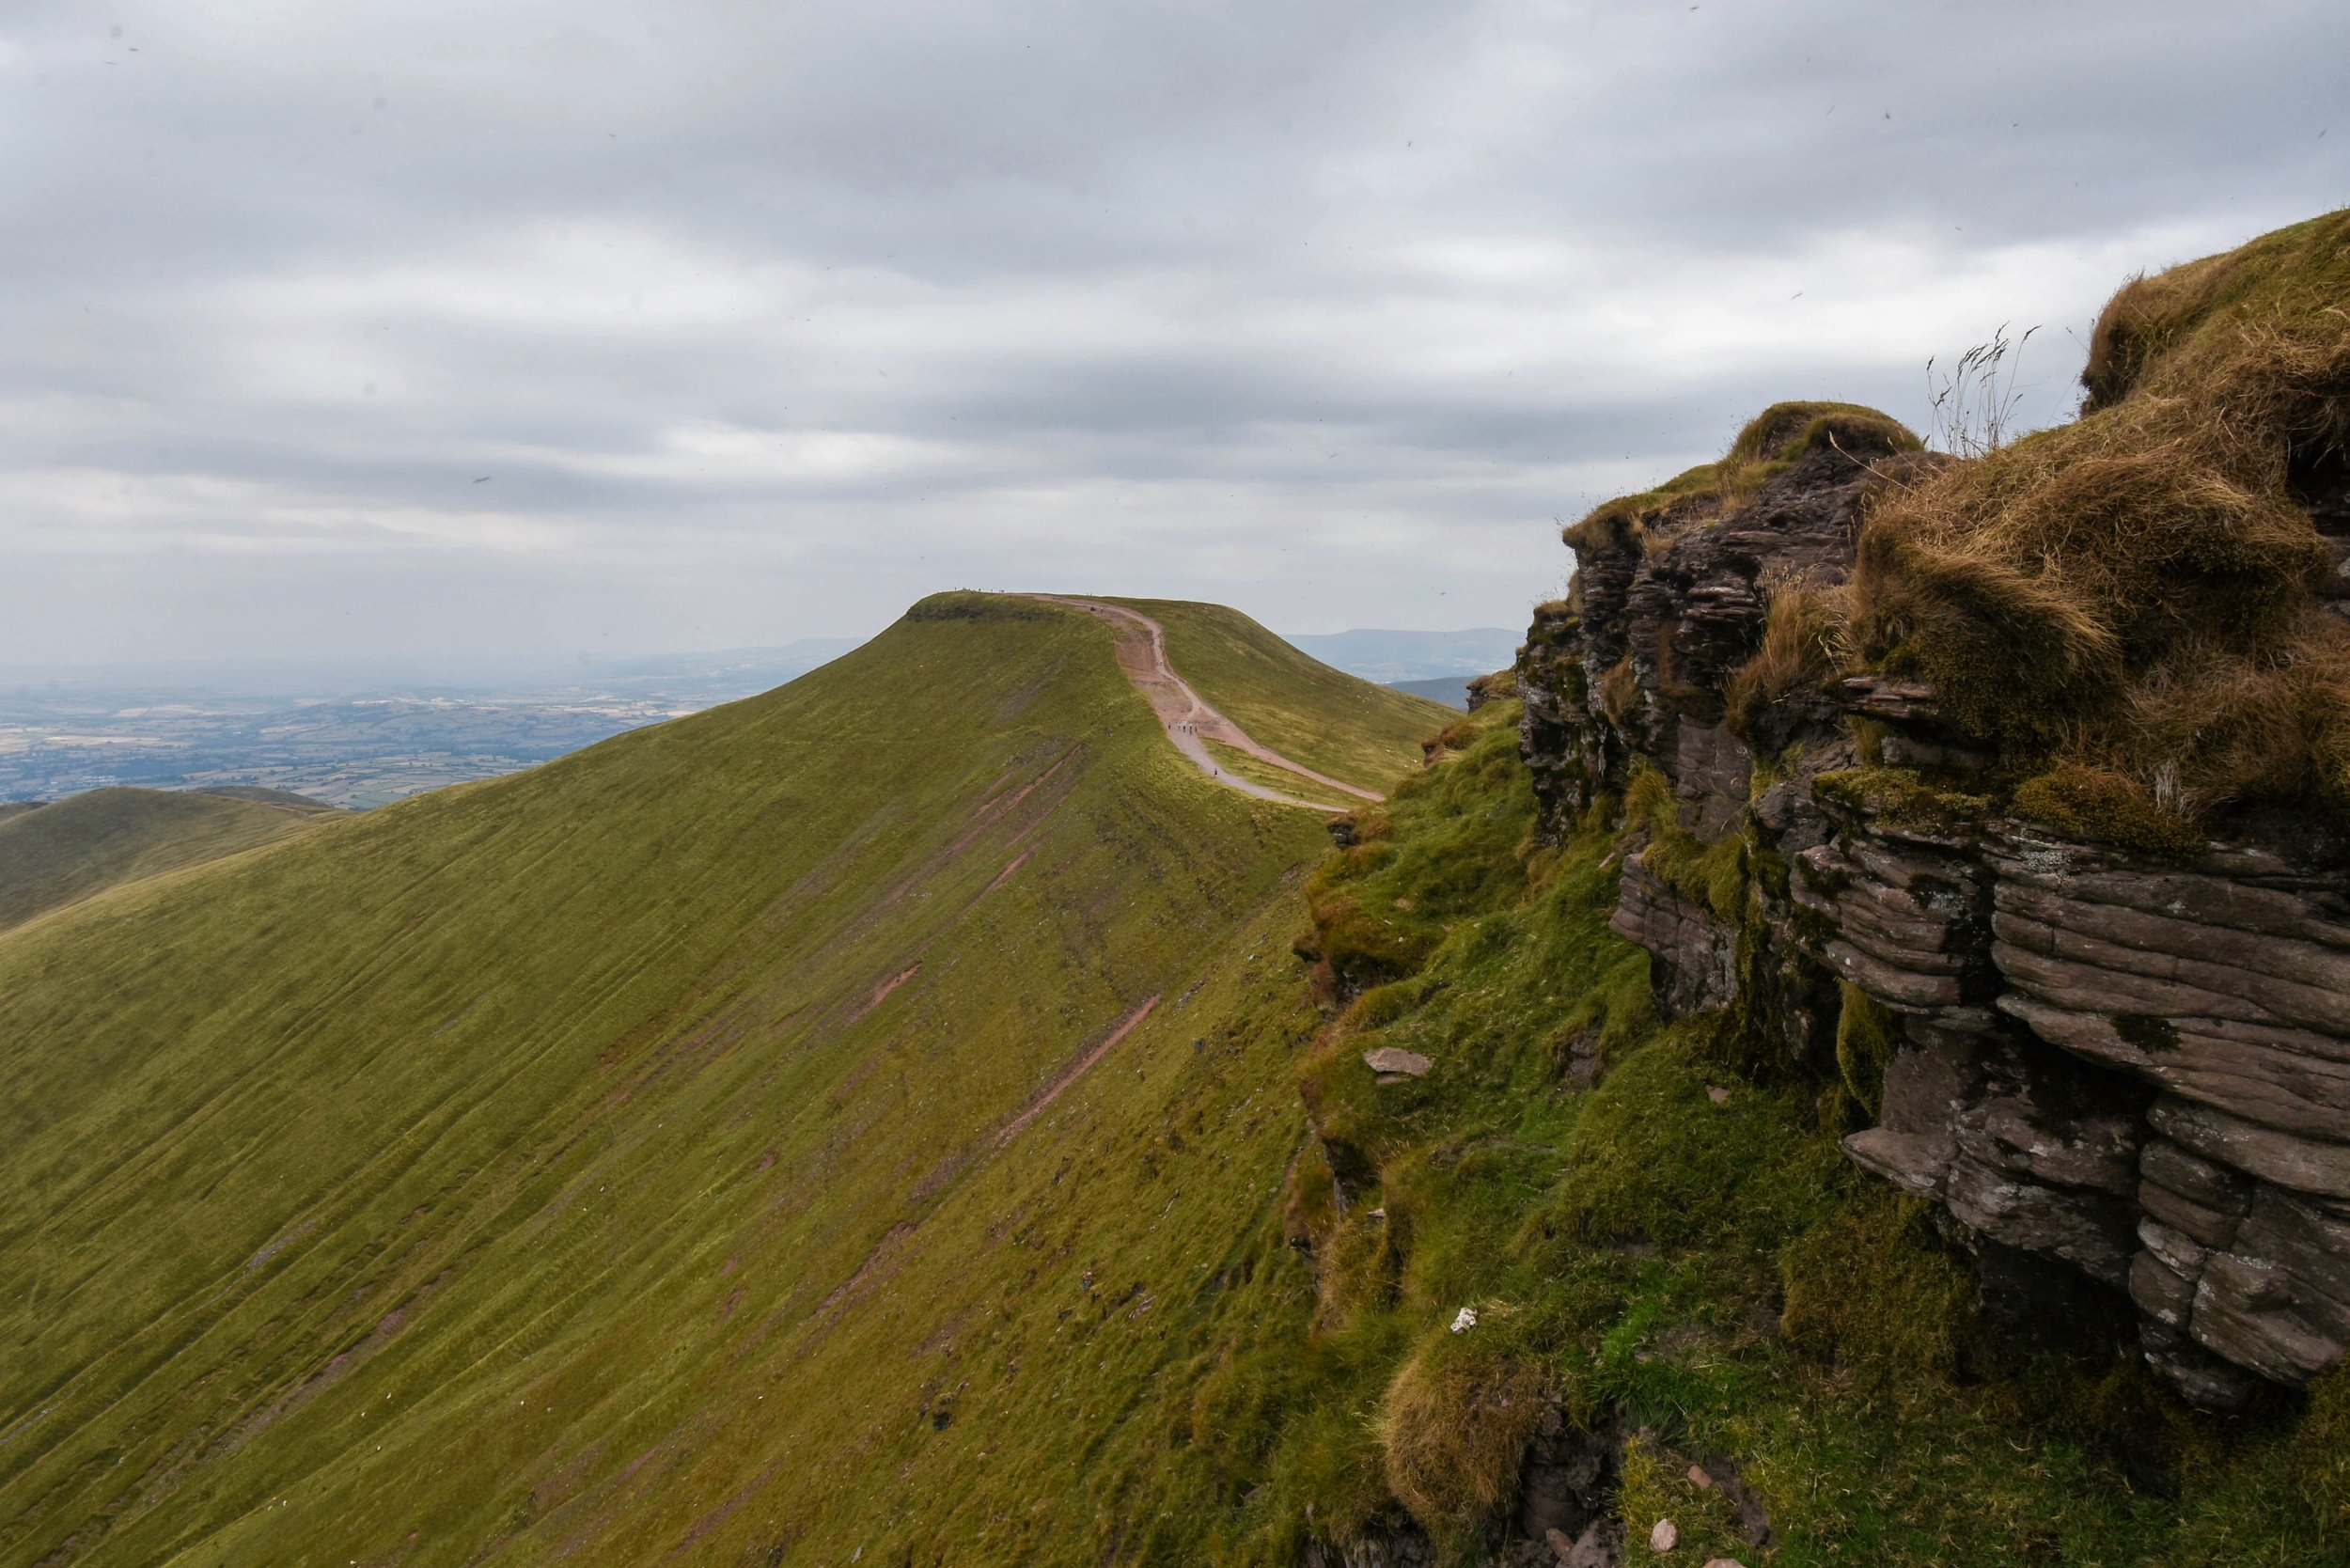 A rocky outcrop atop the emerald slopes of Brecon Beacons.